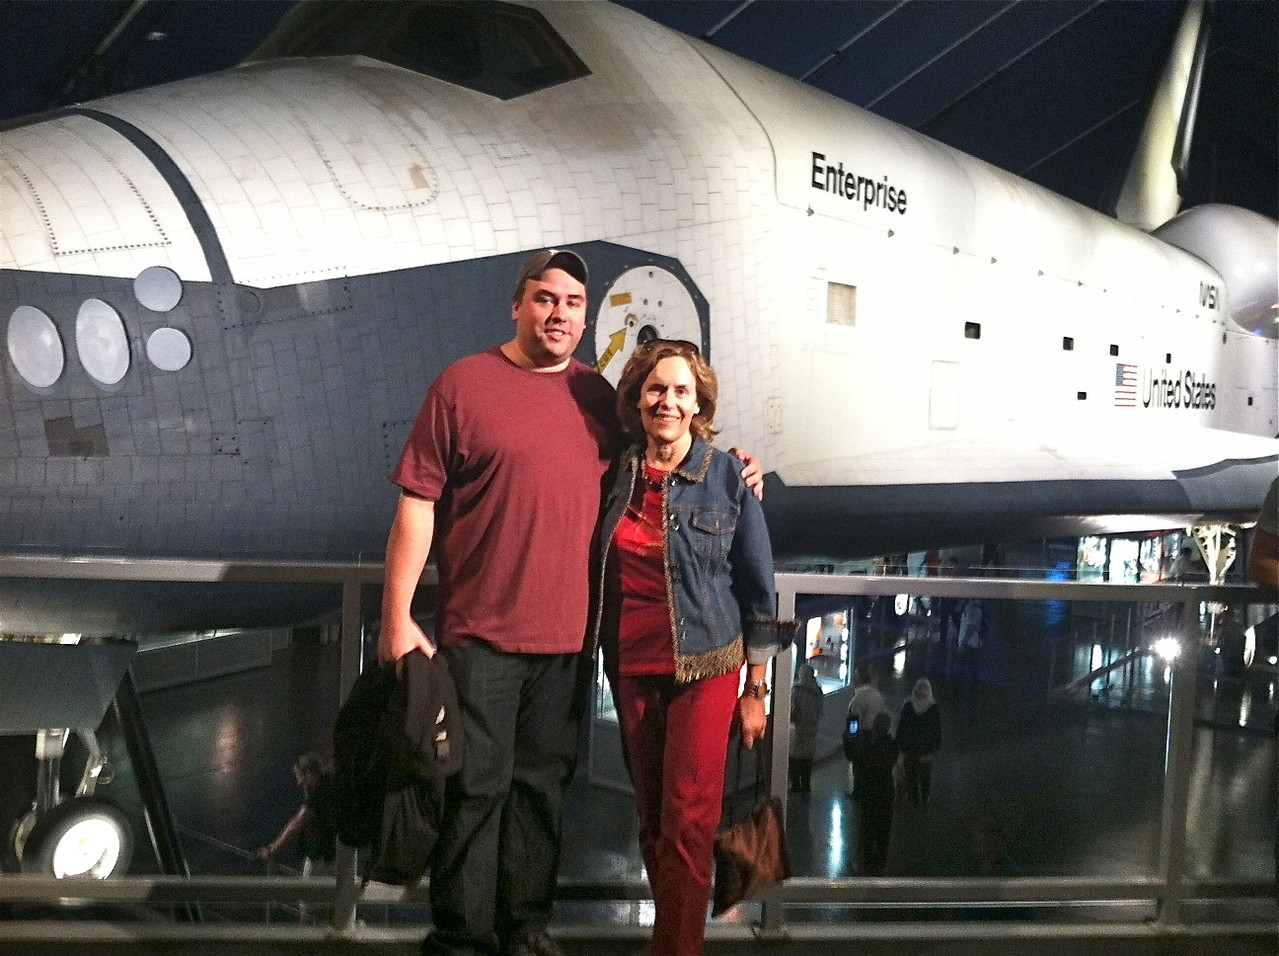 Greg Wagner & Lorraine, Enterprise space shuttle, Sept. 2013, NYC